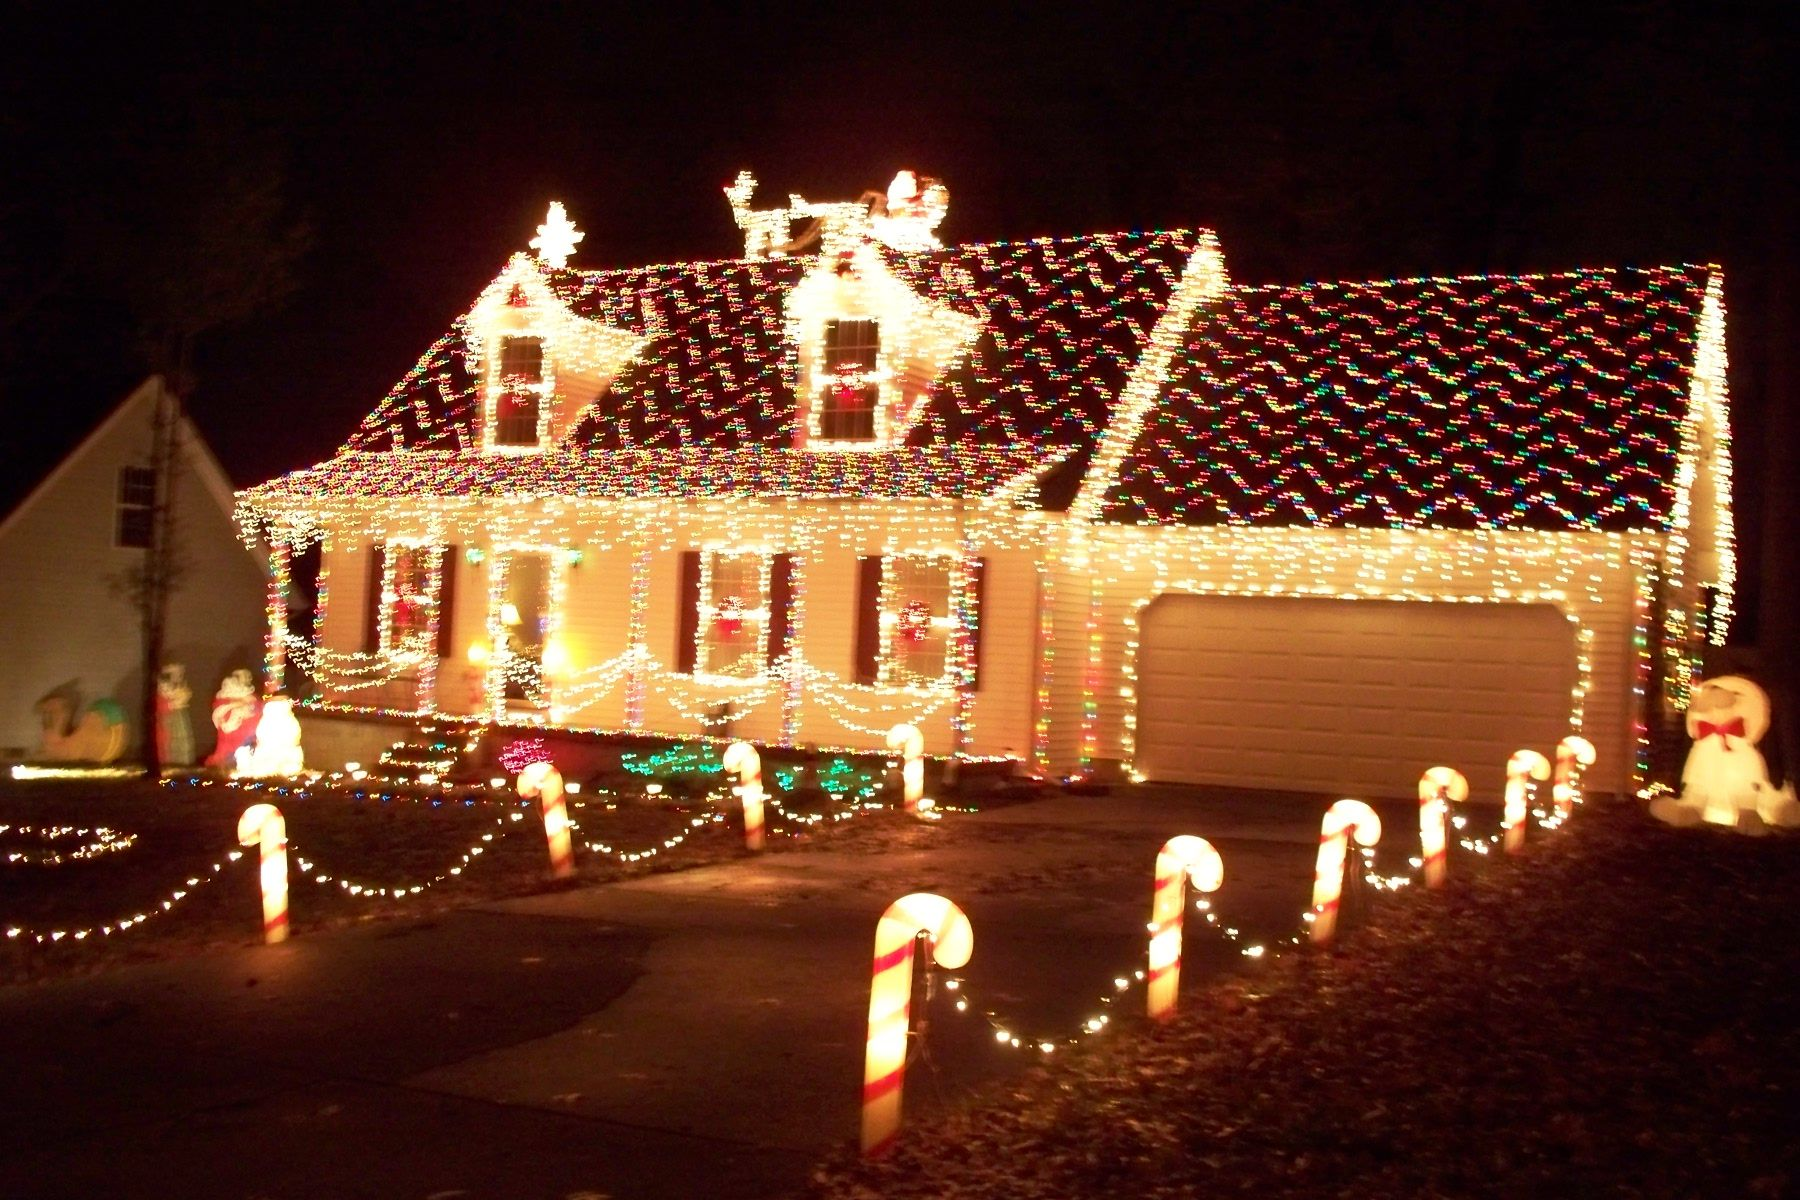 Beautiful Best Place To Get Christmas Decorations Part - 14: Best Christmas Light Displays And Decorations | Where Are, Which  Neighborhoods In Your Area Have